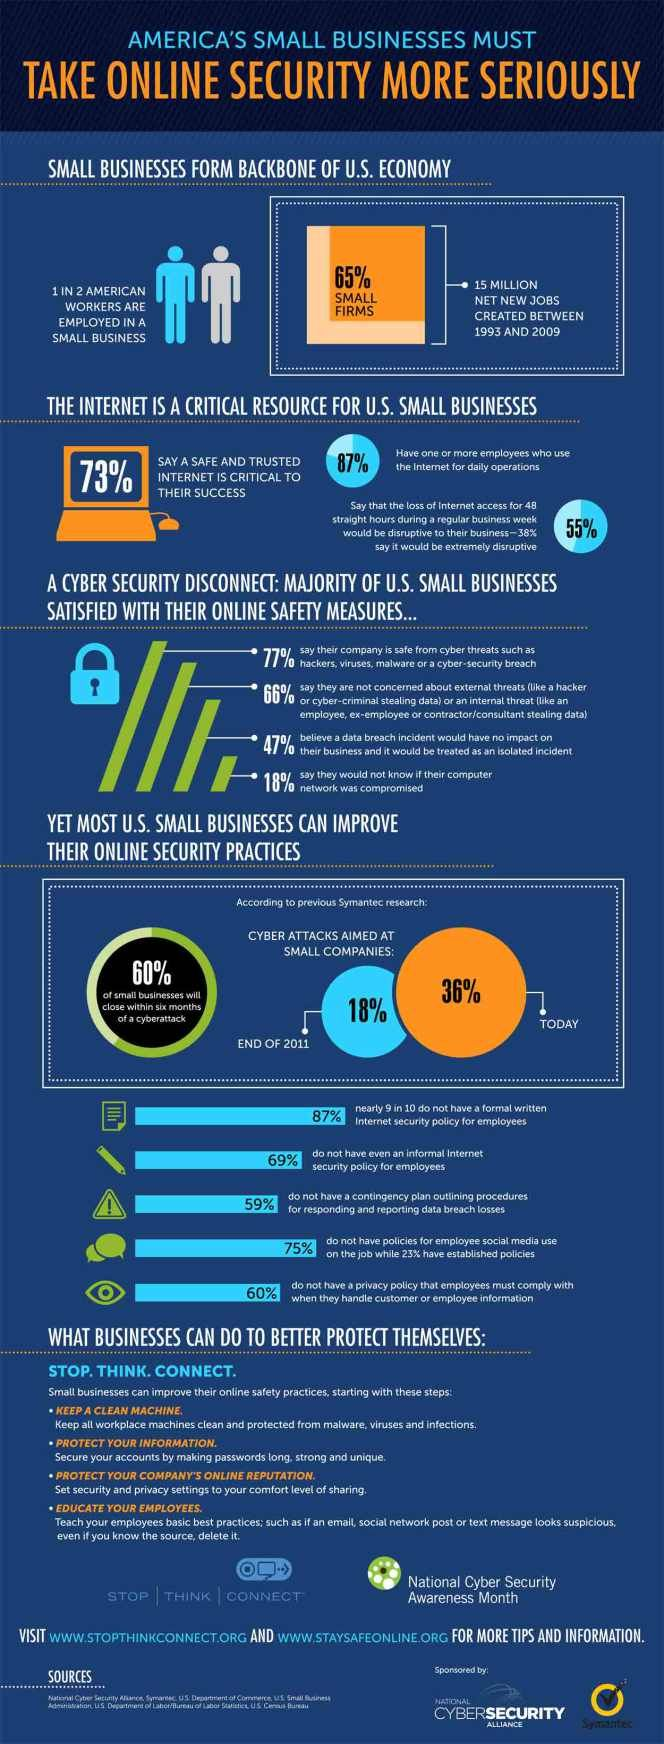 Why Small Businesses Should Take Online Security More Seriously